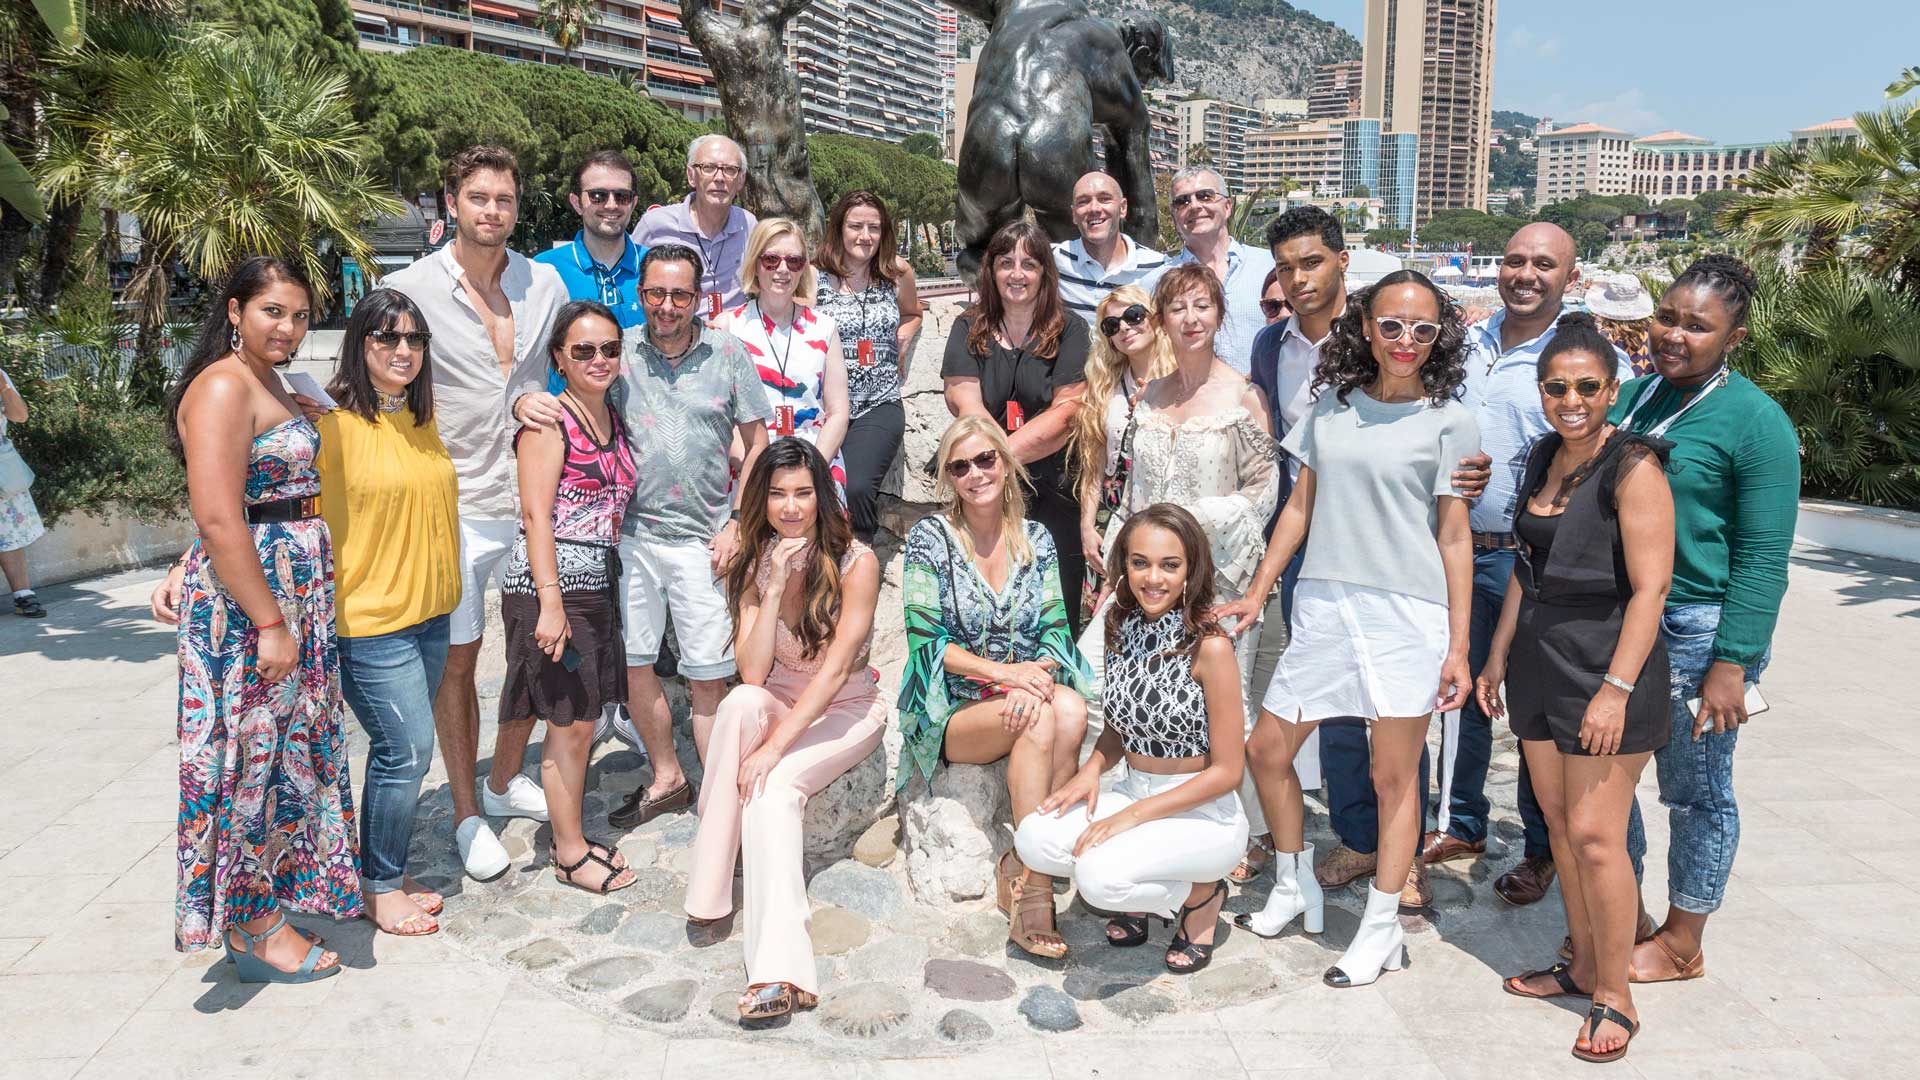 The cast of B&B hit the beautiful beaches of the French Riviera.